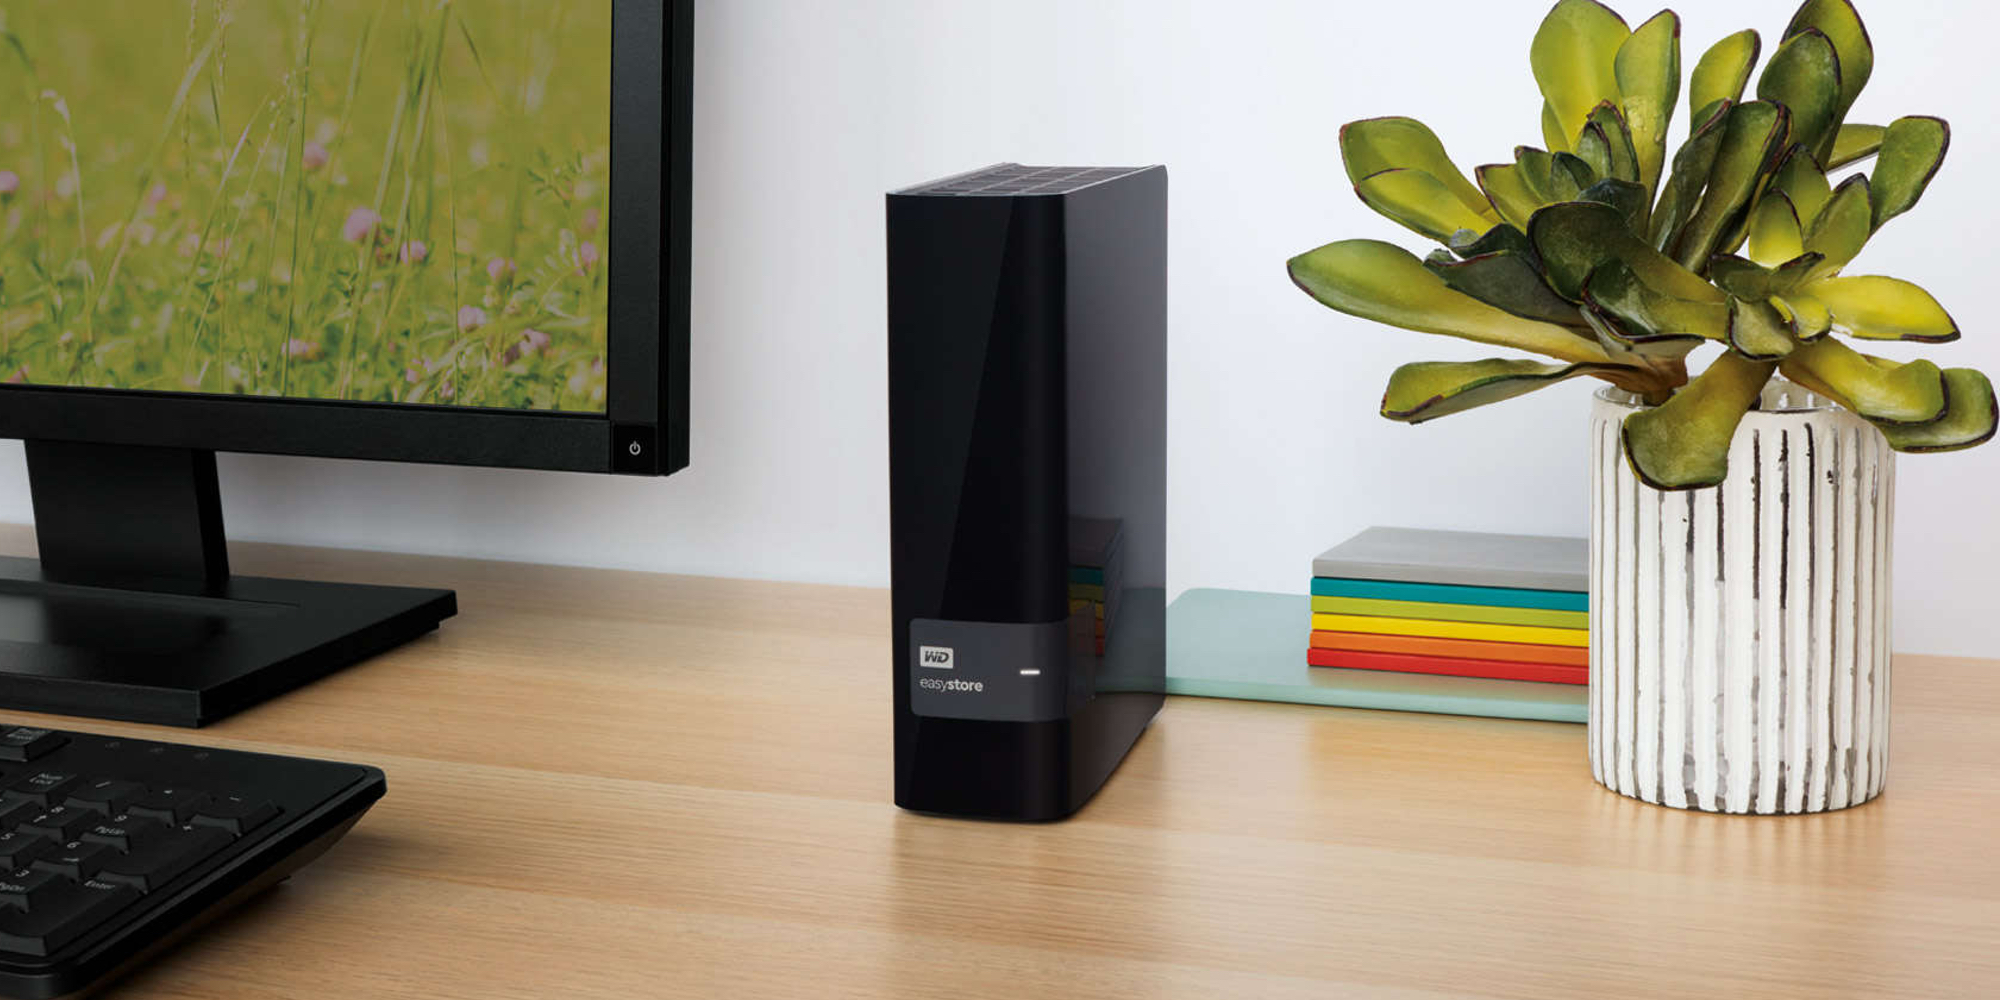 Add 10TB to your workstation with WD's easystore hard drive at $160 (20% off) - 9to5Toys